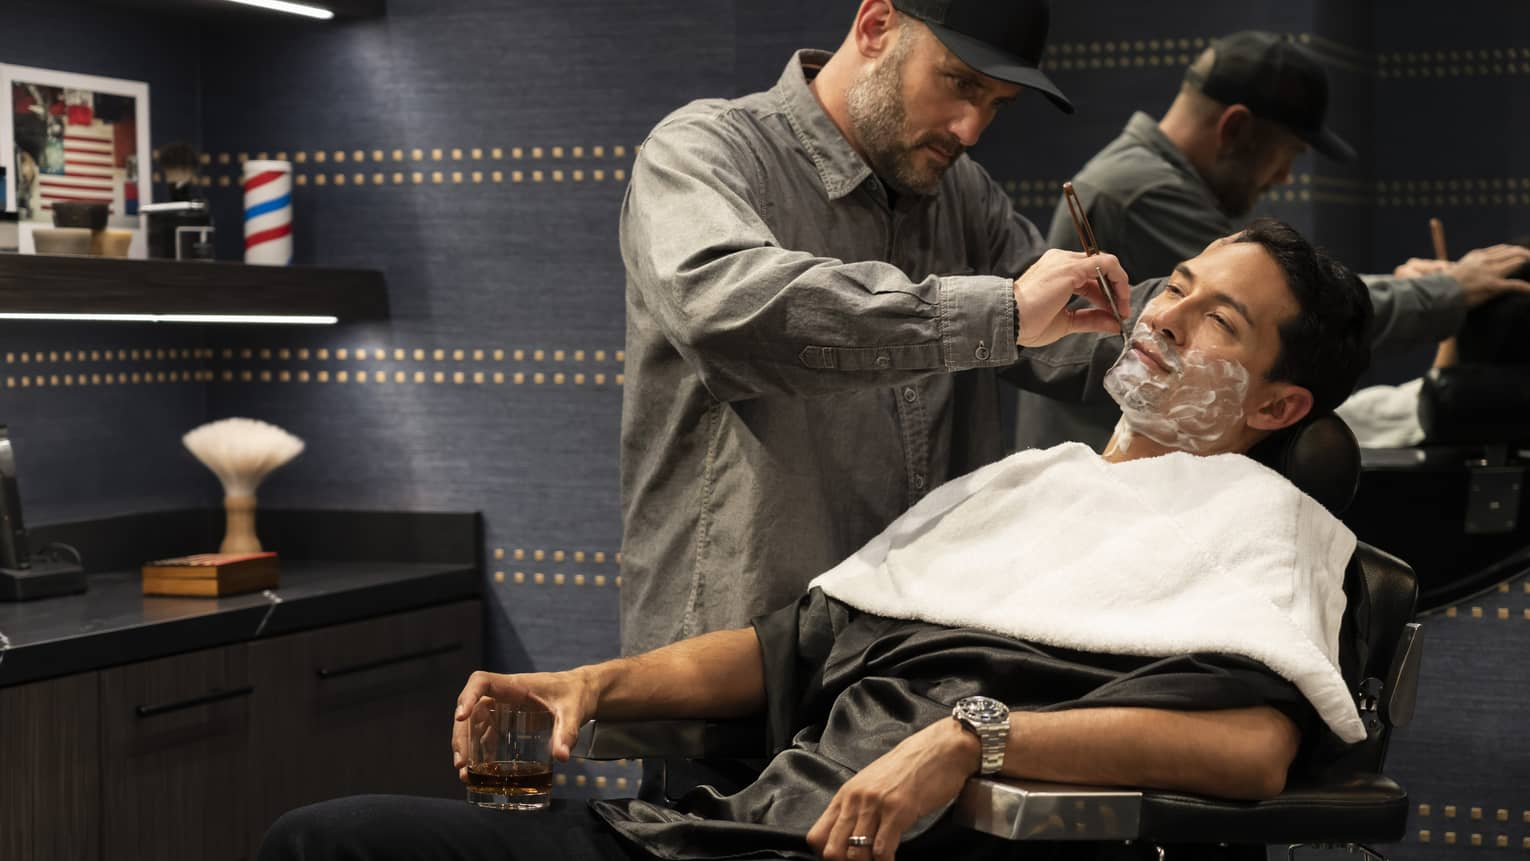 Aman reclines in a barber chair while a barber shaves his beard with a straight razor